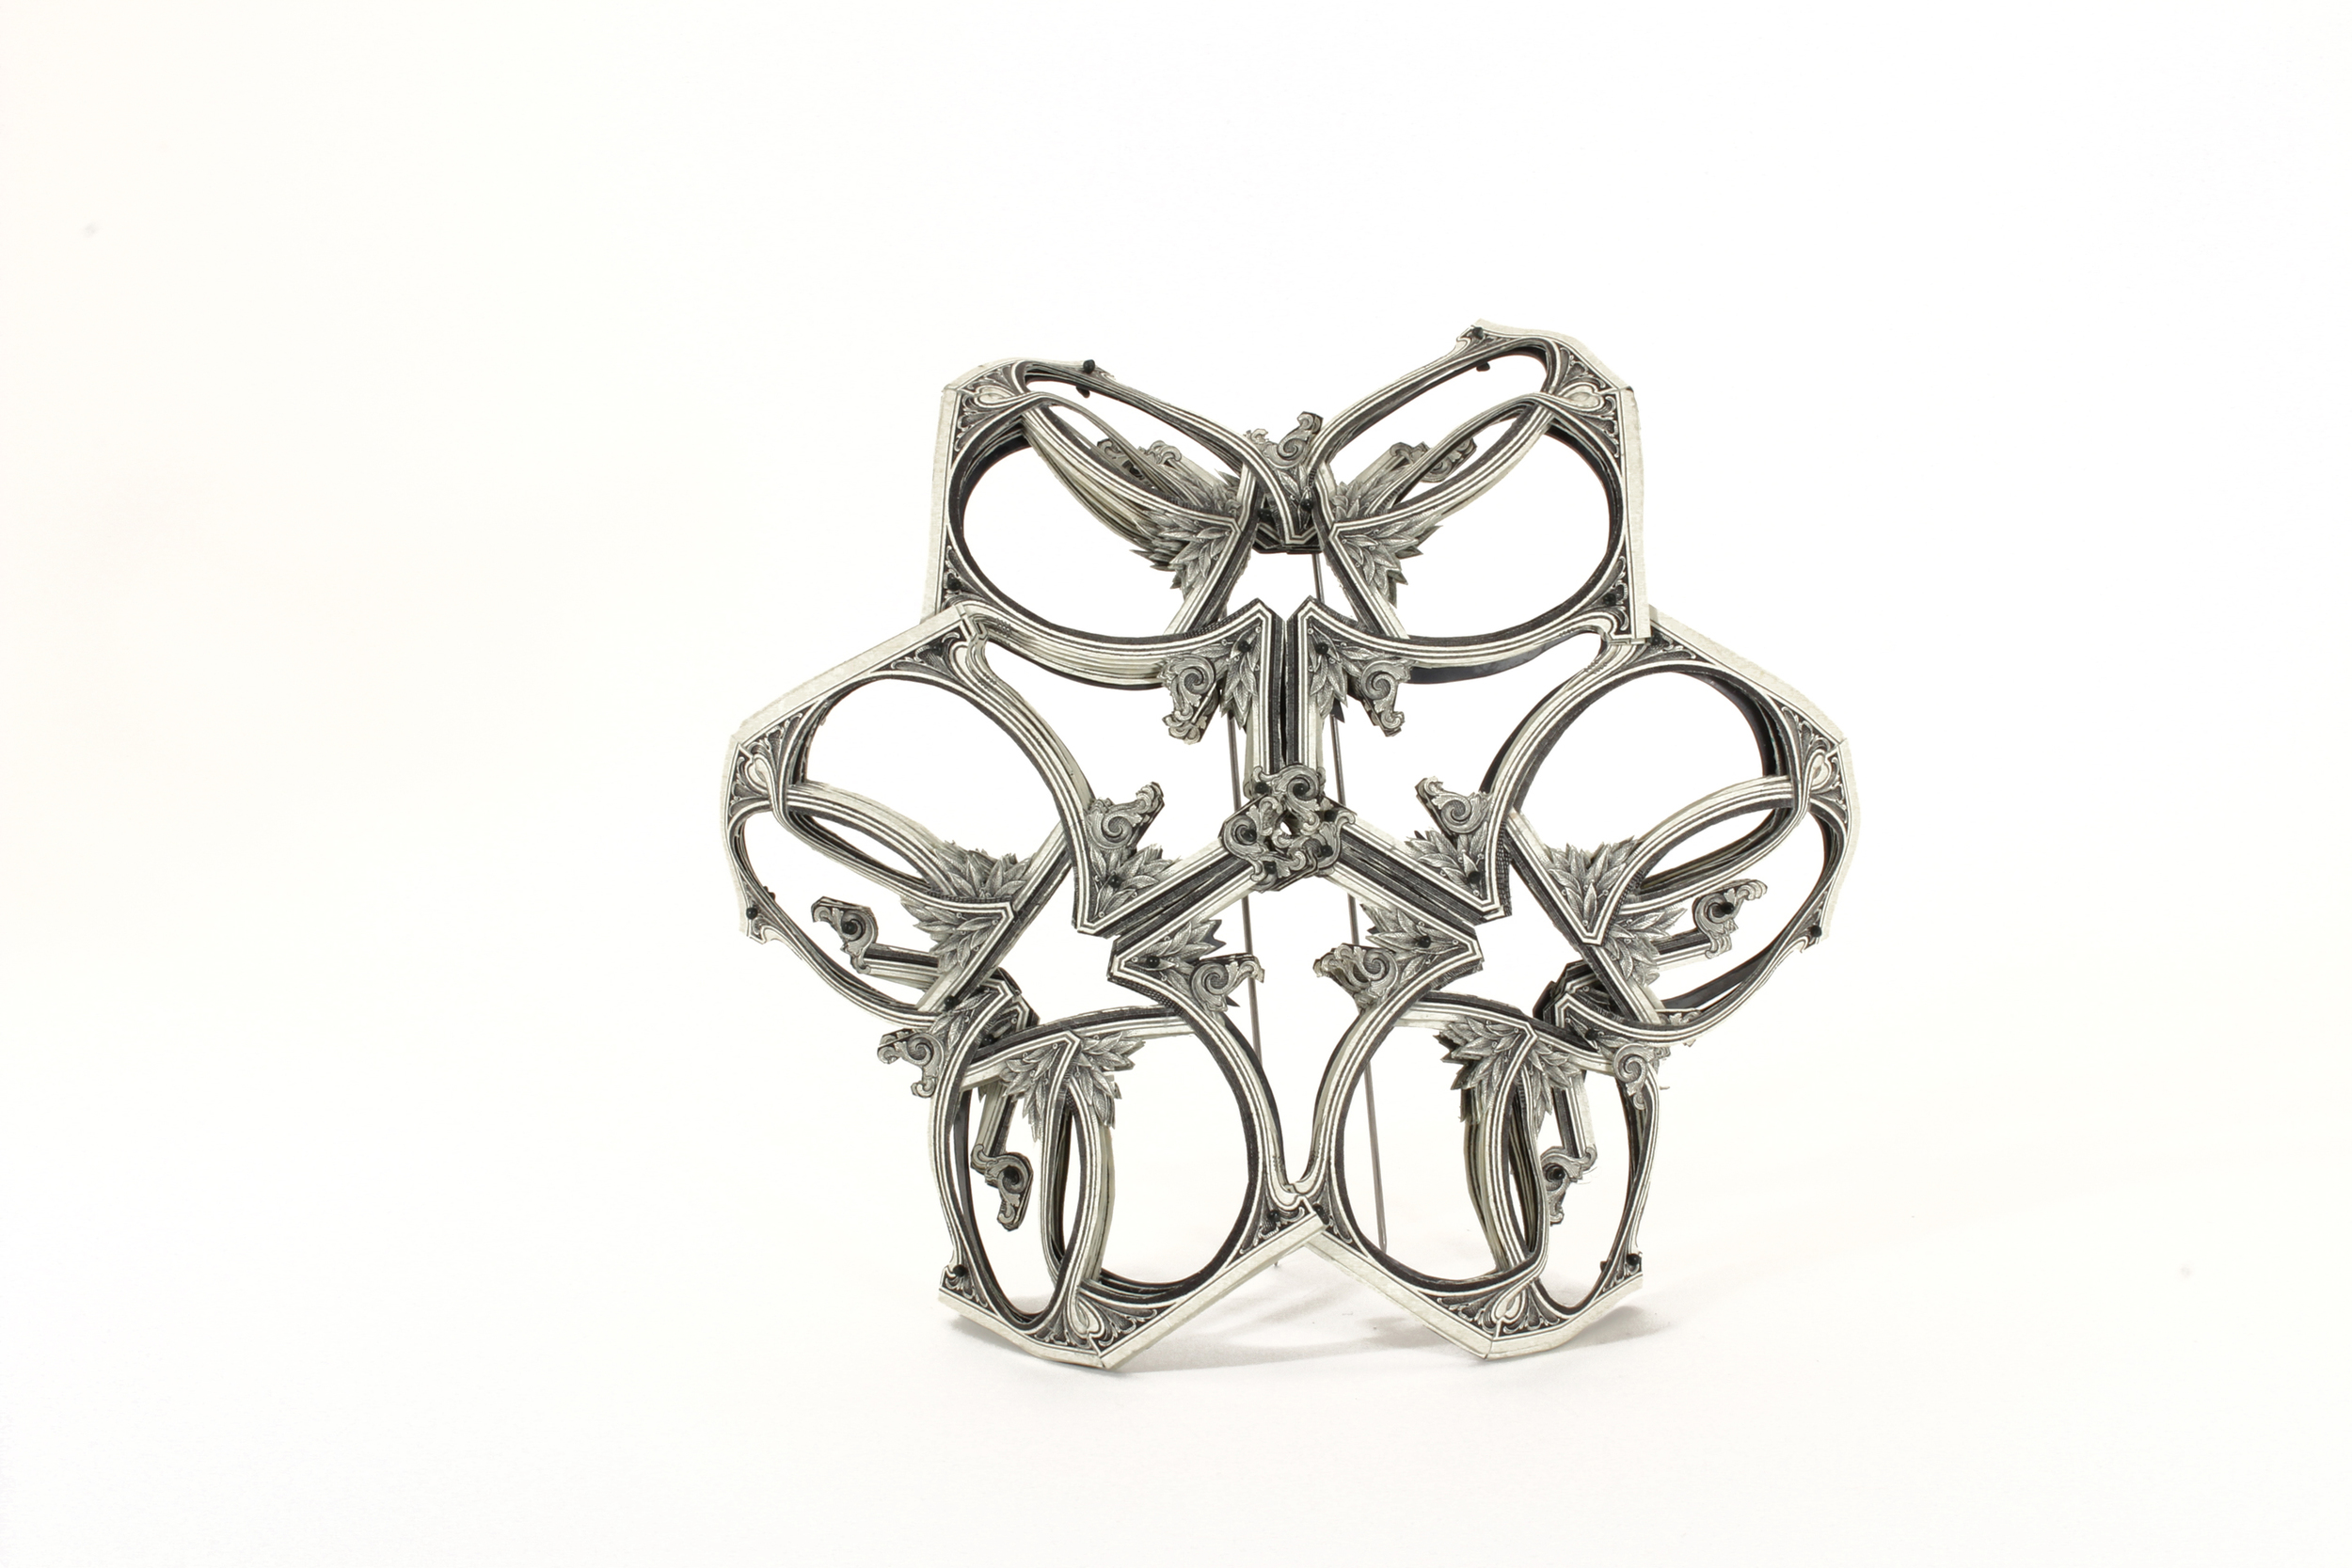 $60.00 Currency Converted   |  Brooch  |  US Dollars, Monofilament, and Surgical Steel  |  2015  |  Private Collection  |  1/1